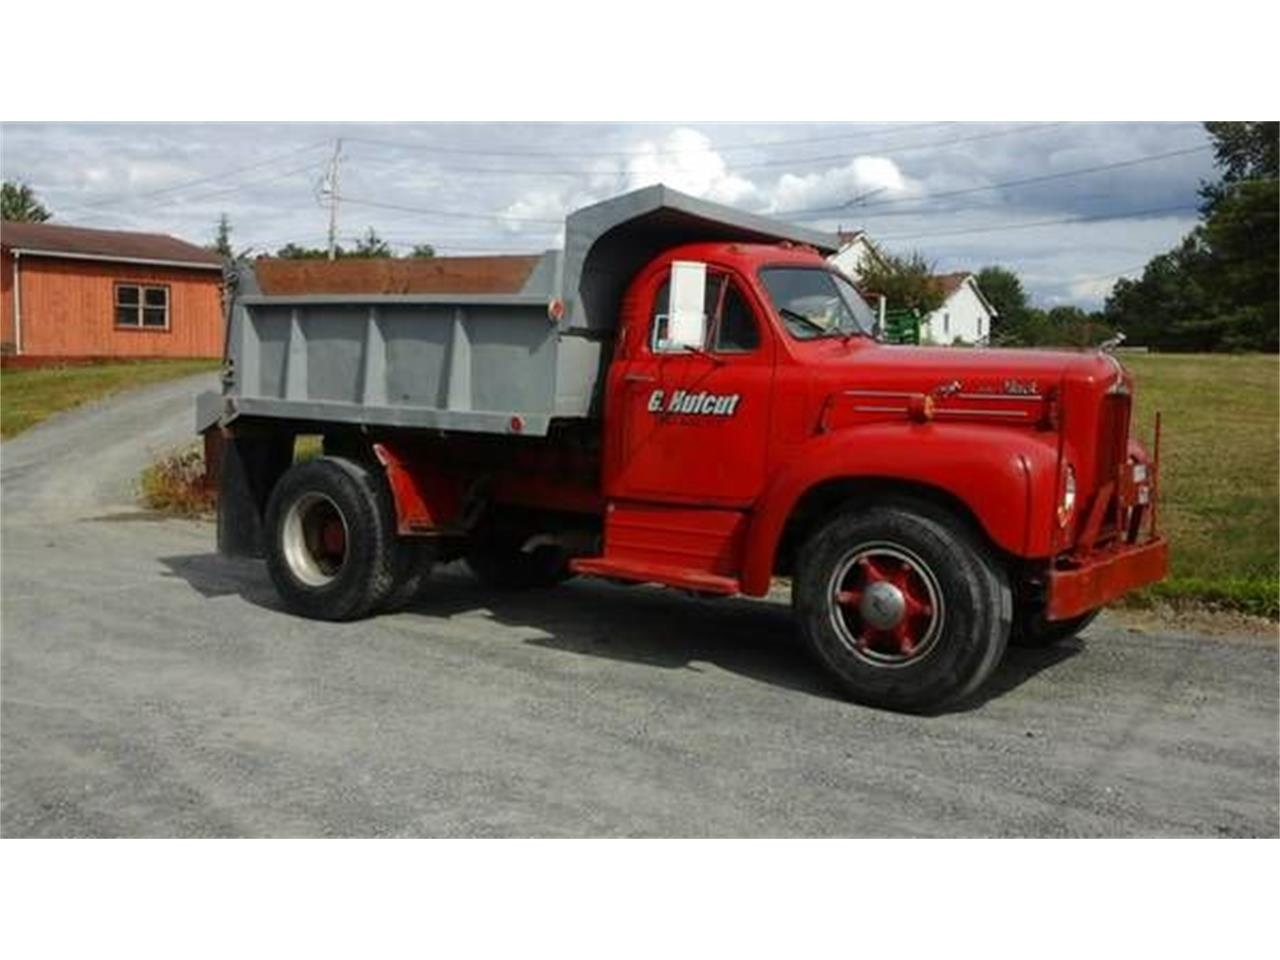 1956 Mack Truck For Sale Classiccars Com Cc 1130270